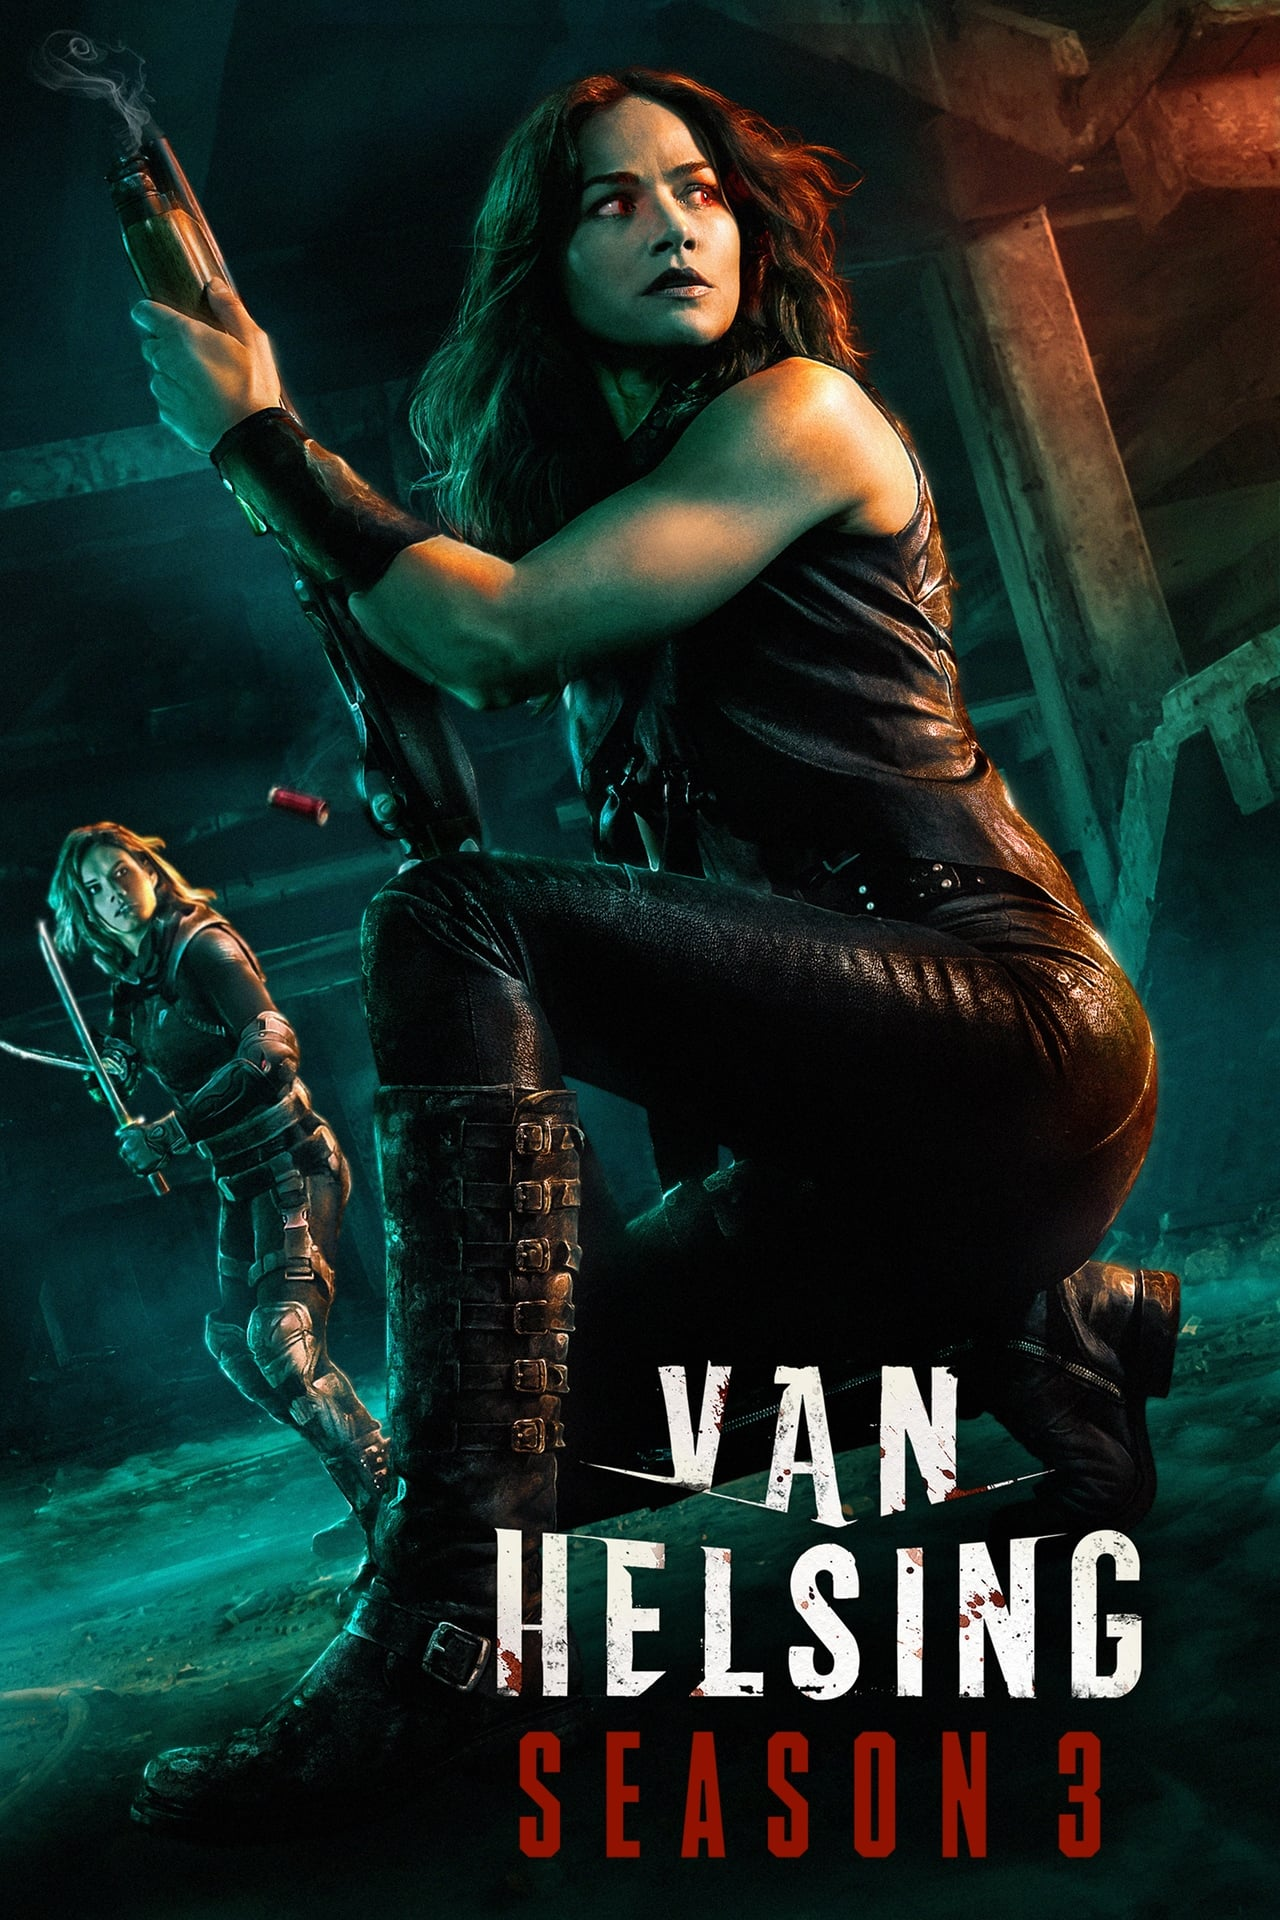 Van Helsing Season 3 (2018) putlockers cafe